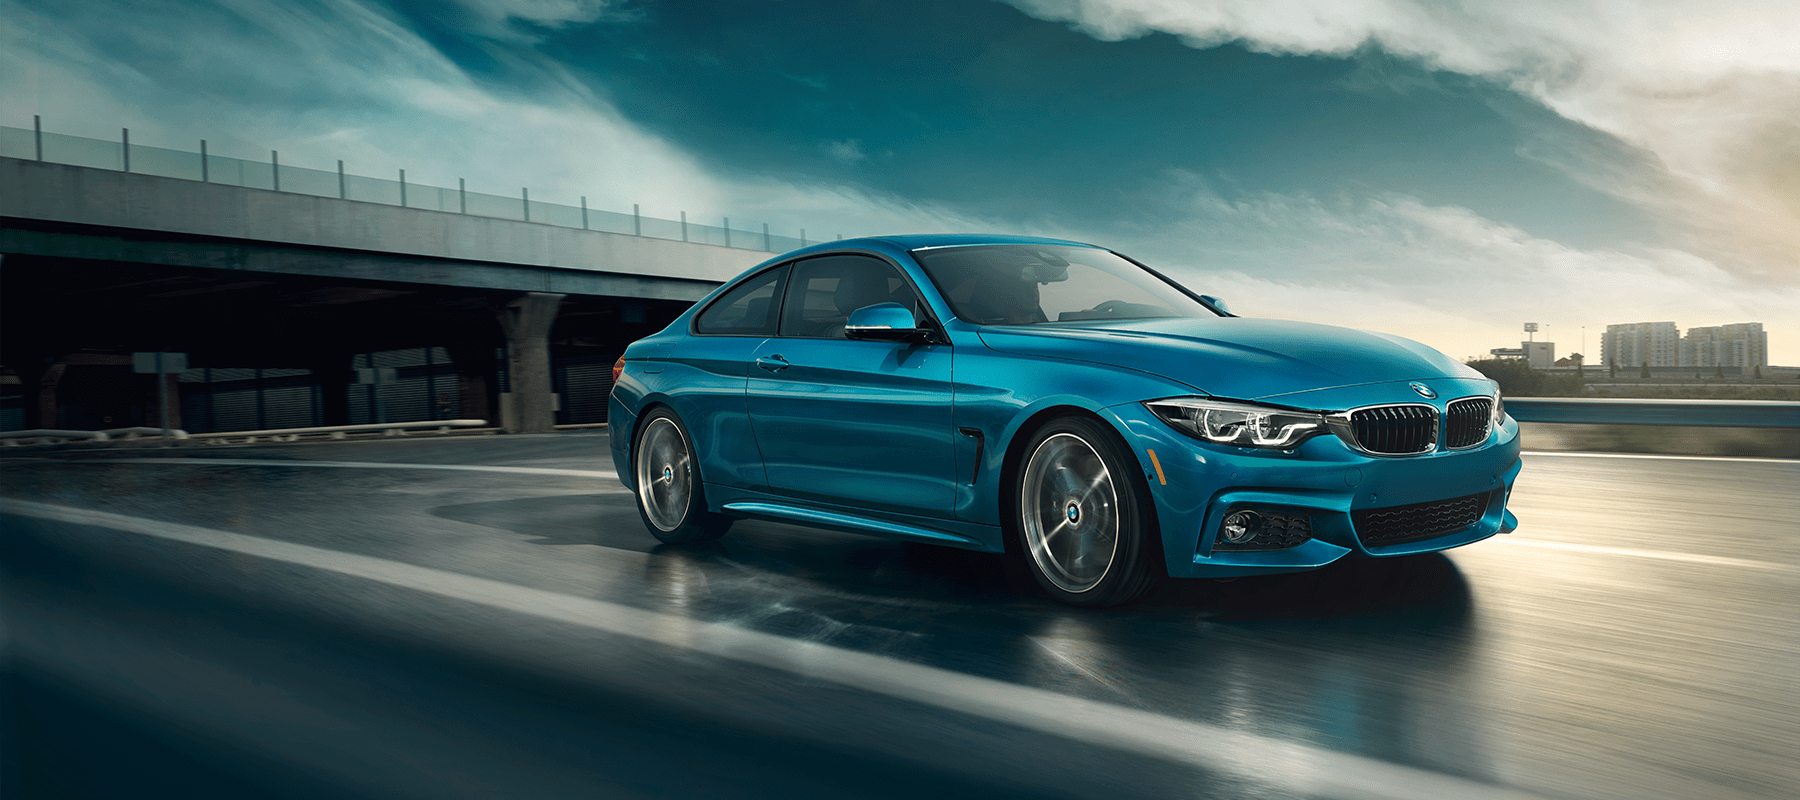 A Teel blue BMW 2019 4Series Coupe speeding down the road after a brief rain